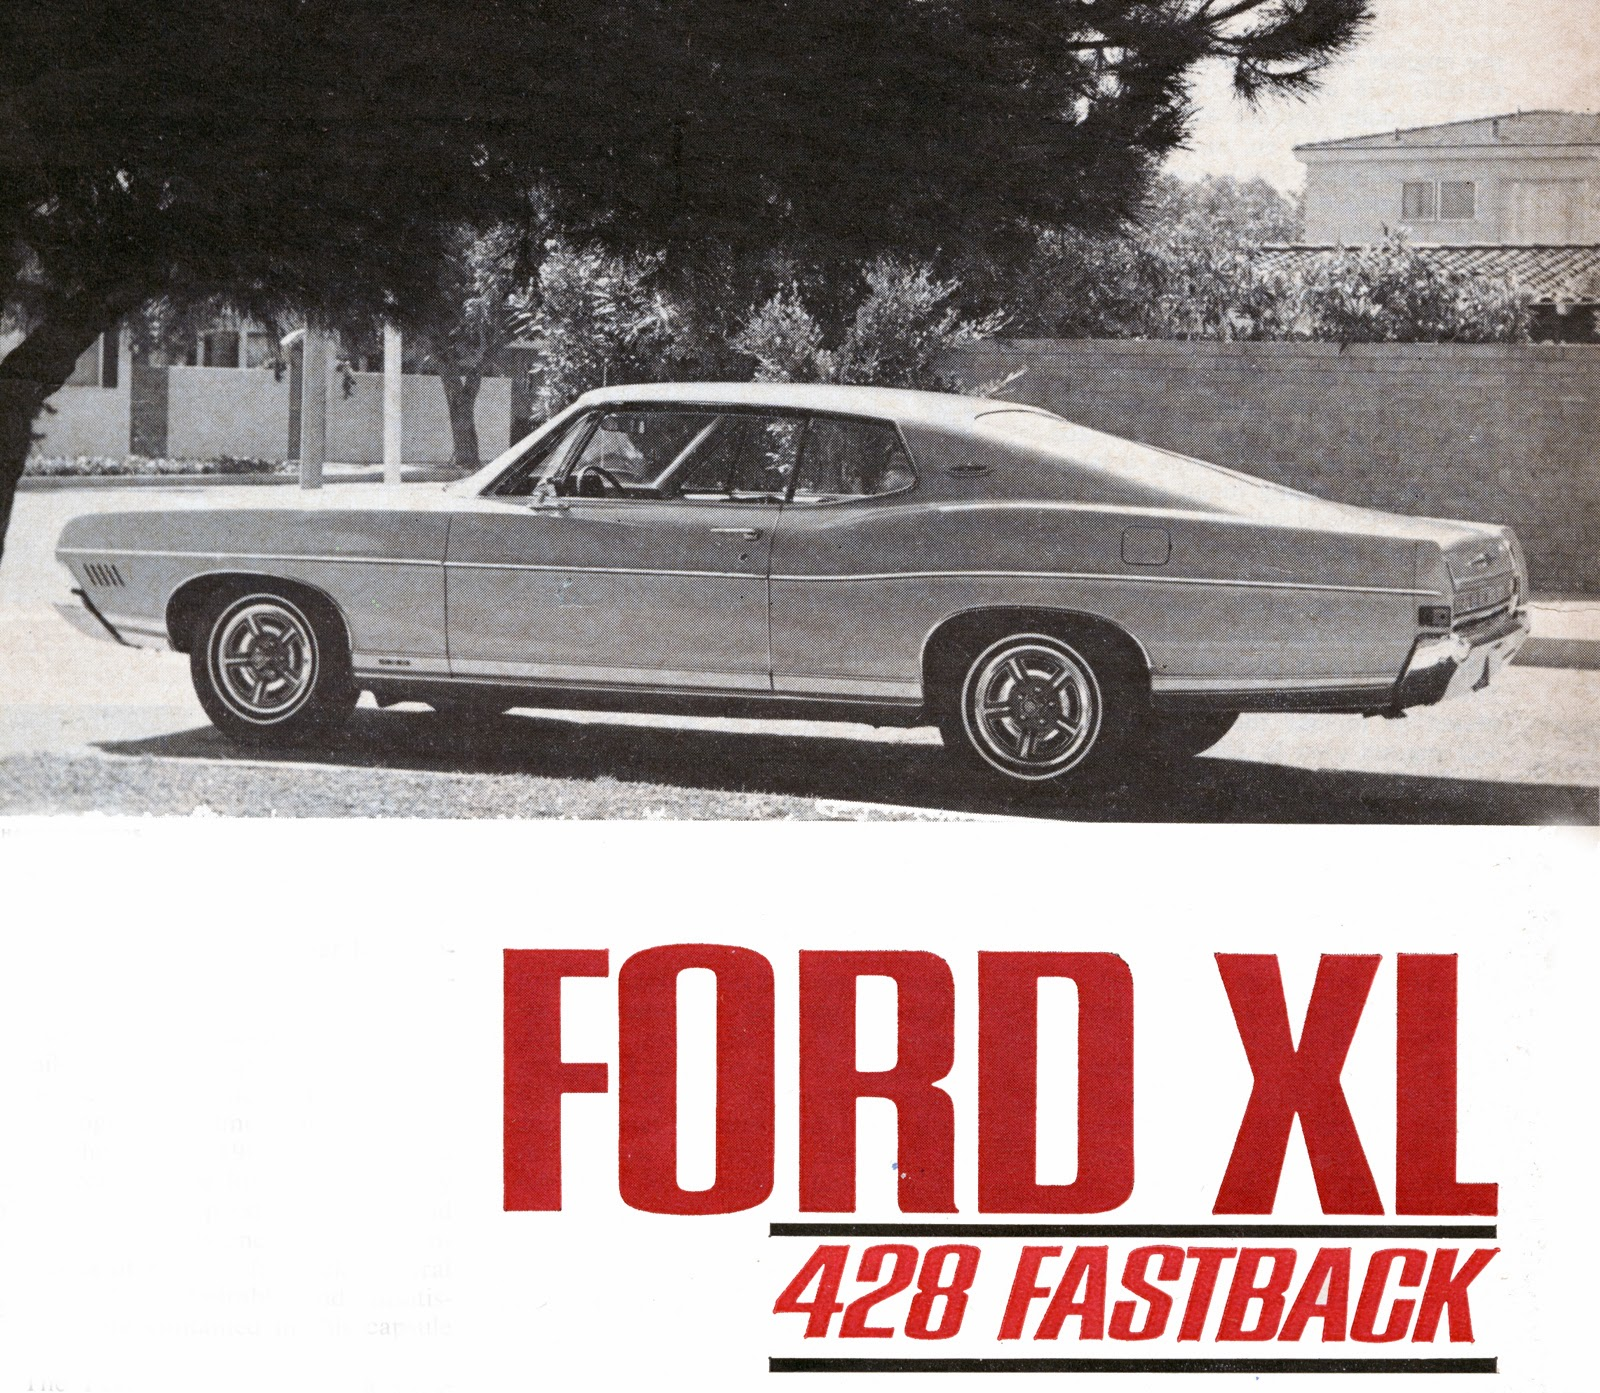 The 1968 1970 Ford Xl Gt Cars Phscollectorcarworld Ltd Convertible Promotional Slick For 428 Fastback